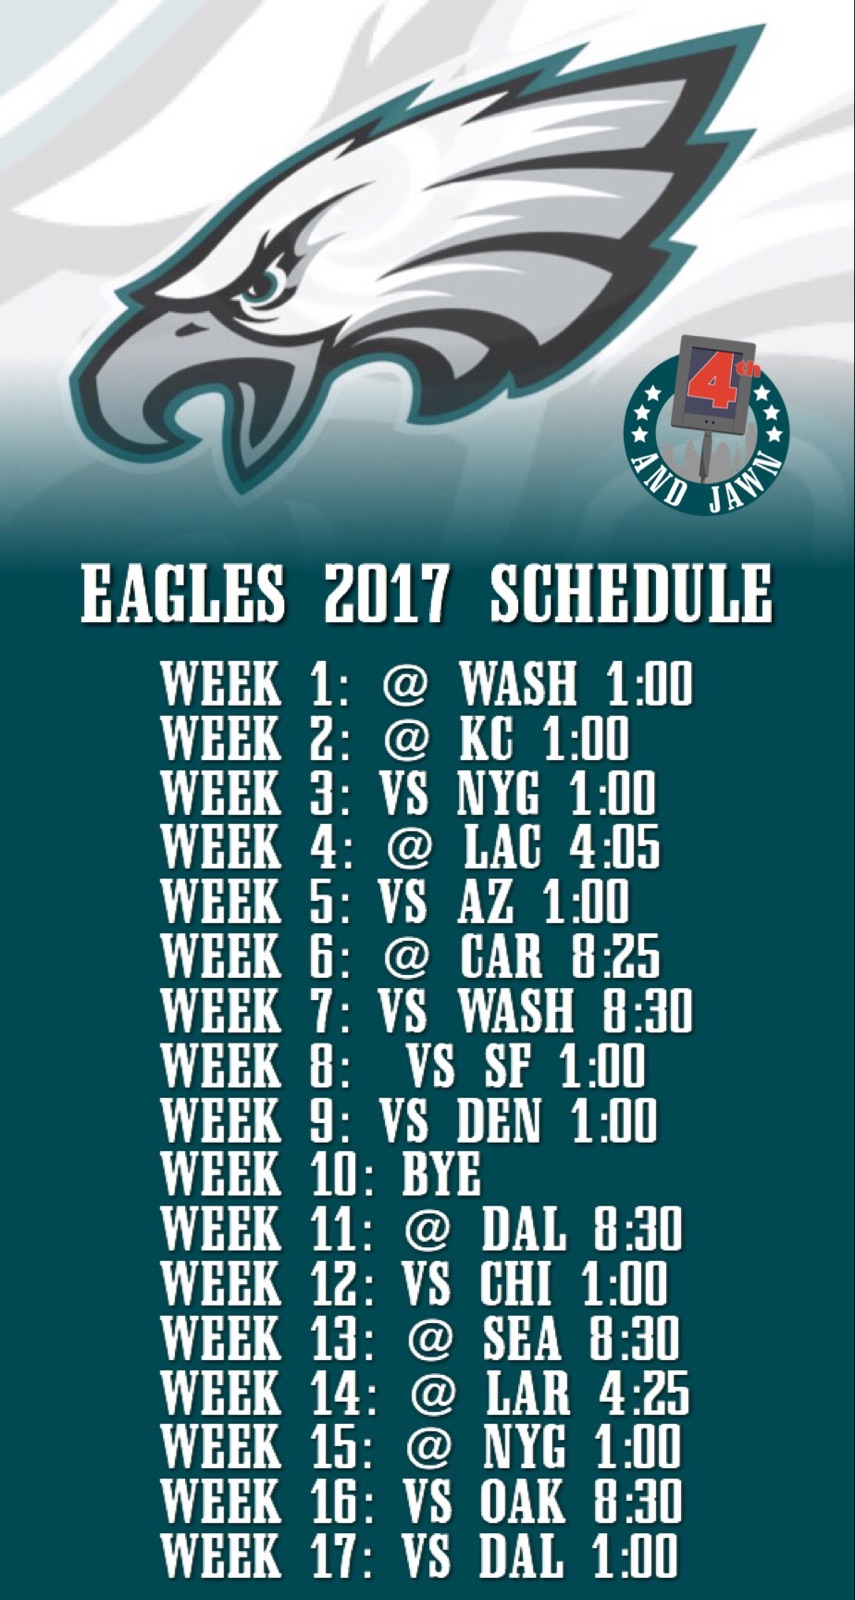 Eagles Upcoming Schedule